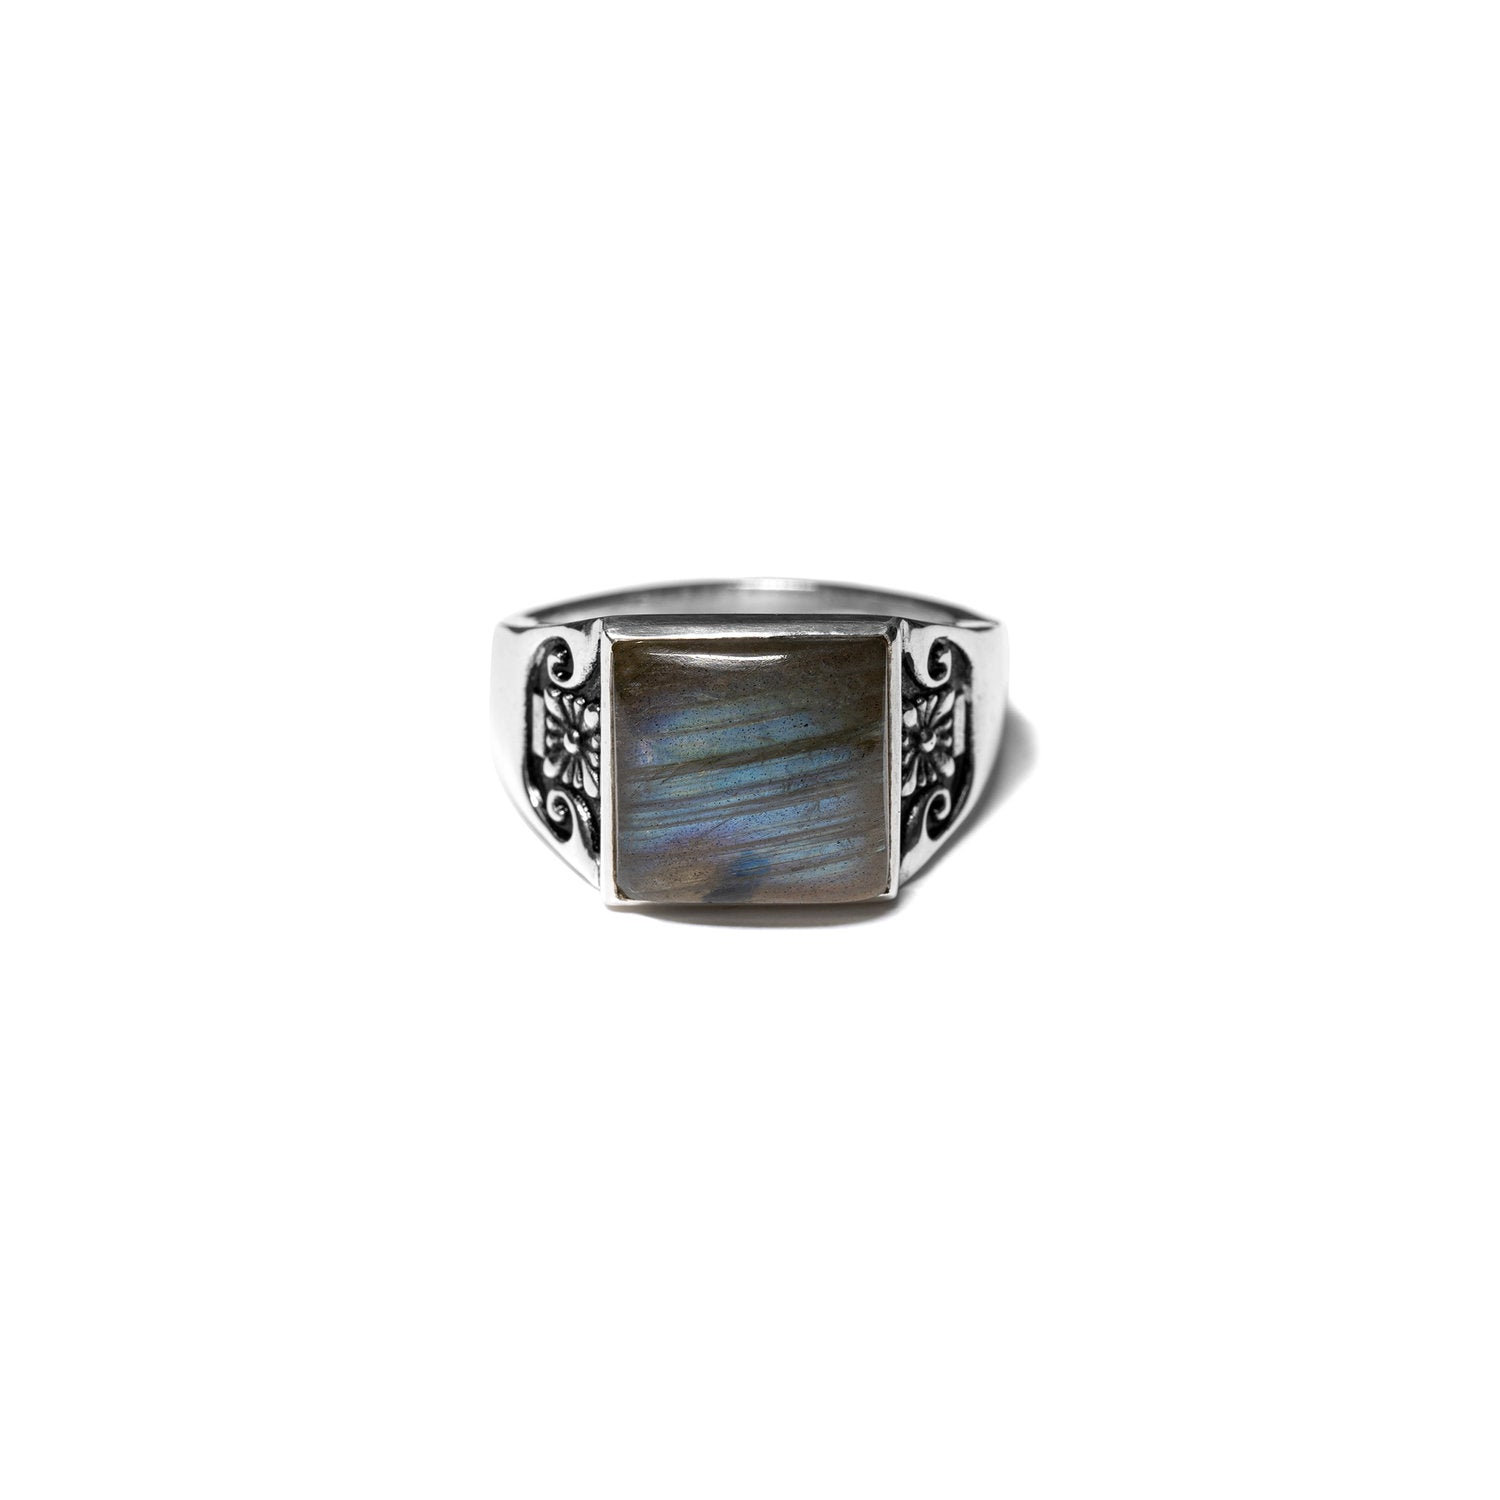 MAPLE JEWELERY COLLEGIATE RING (SILVER/LABRADORITE)